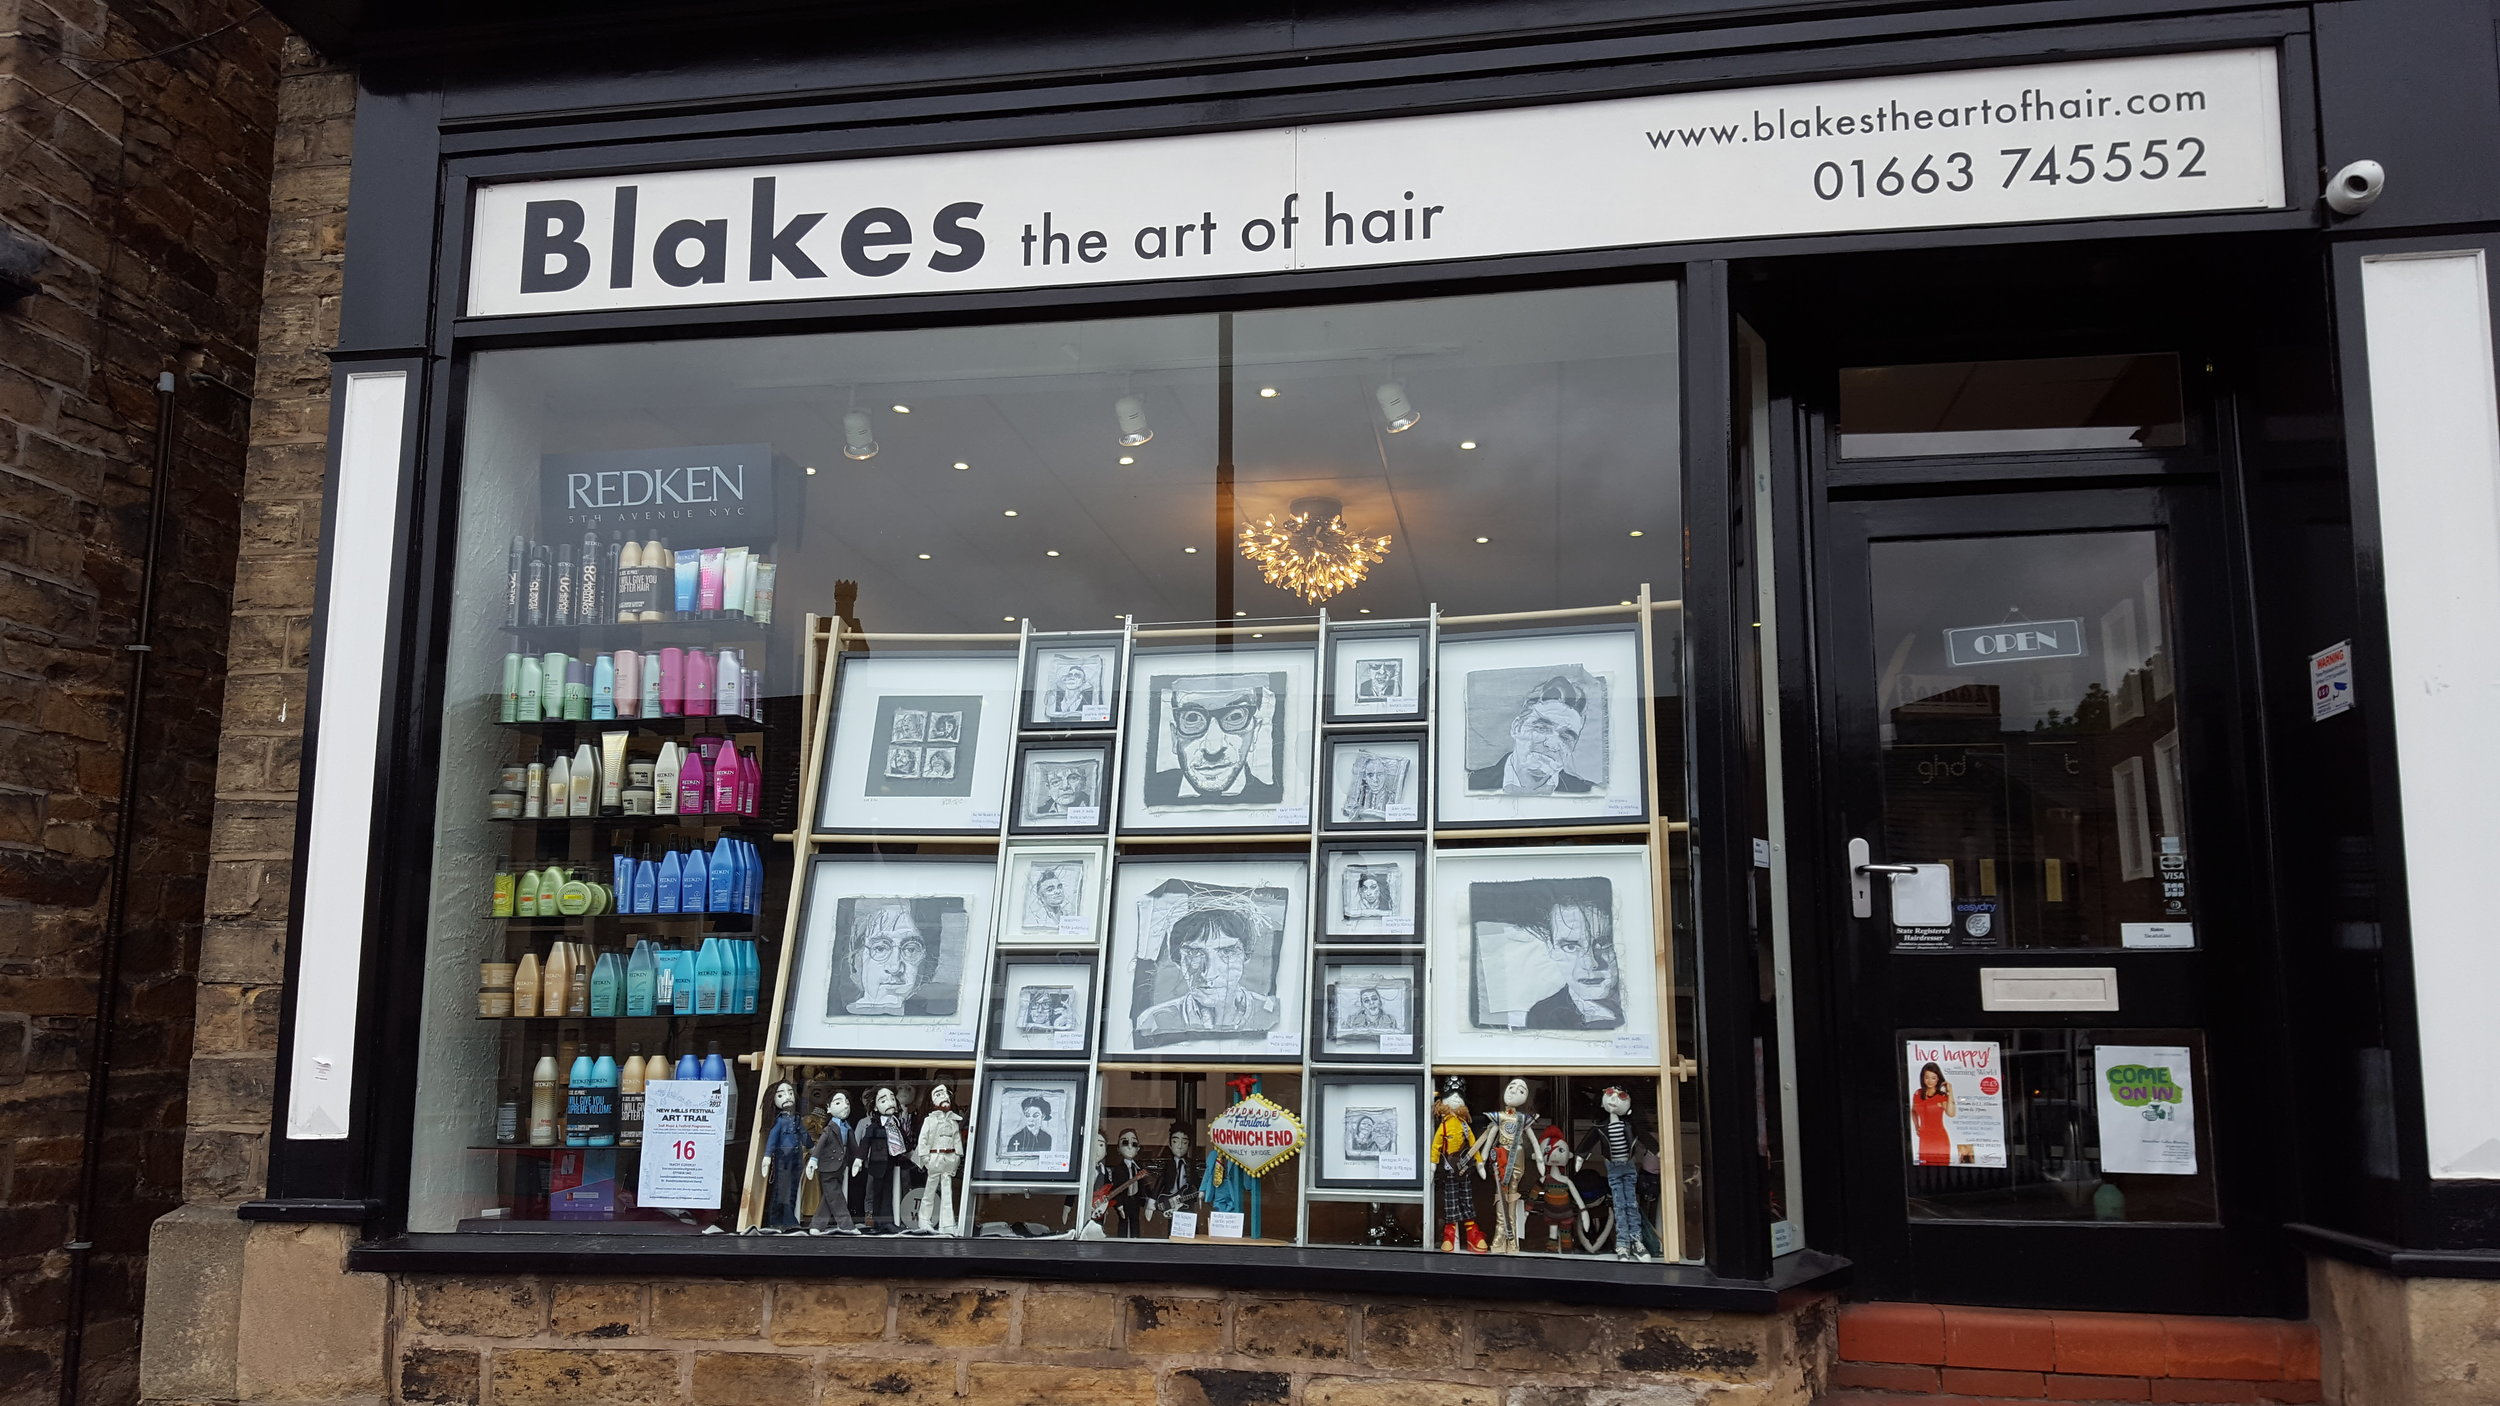 13. Blakes The Art Of Hair